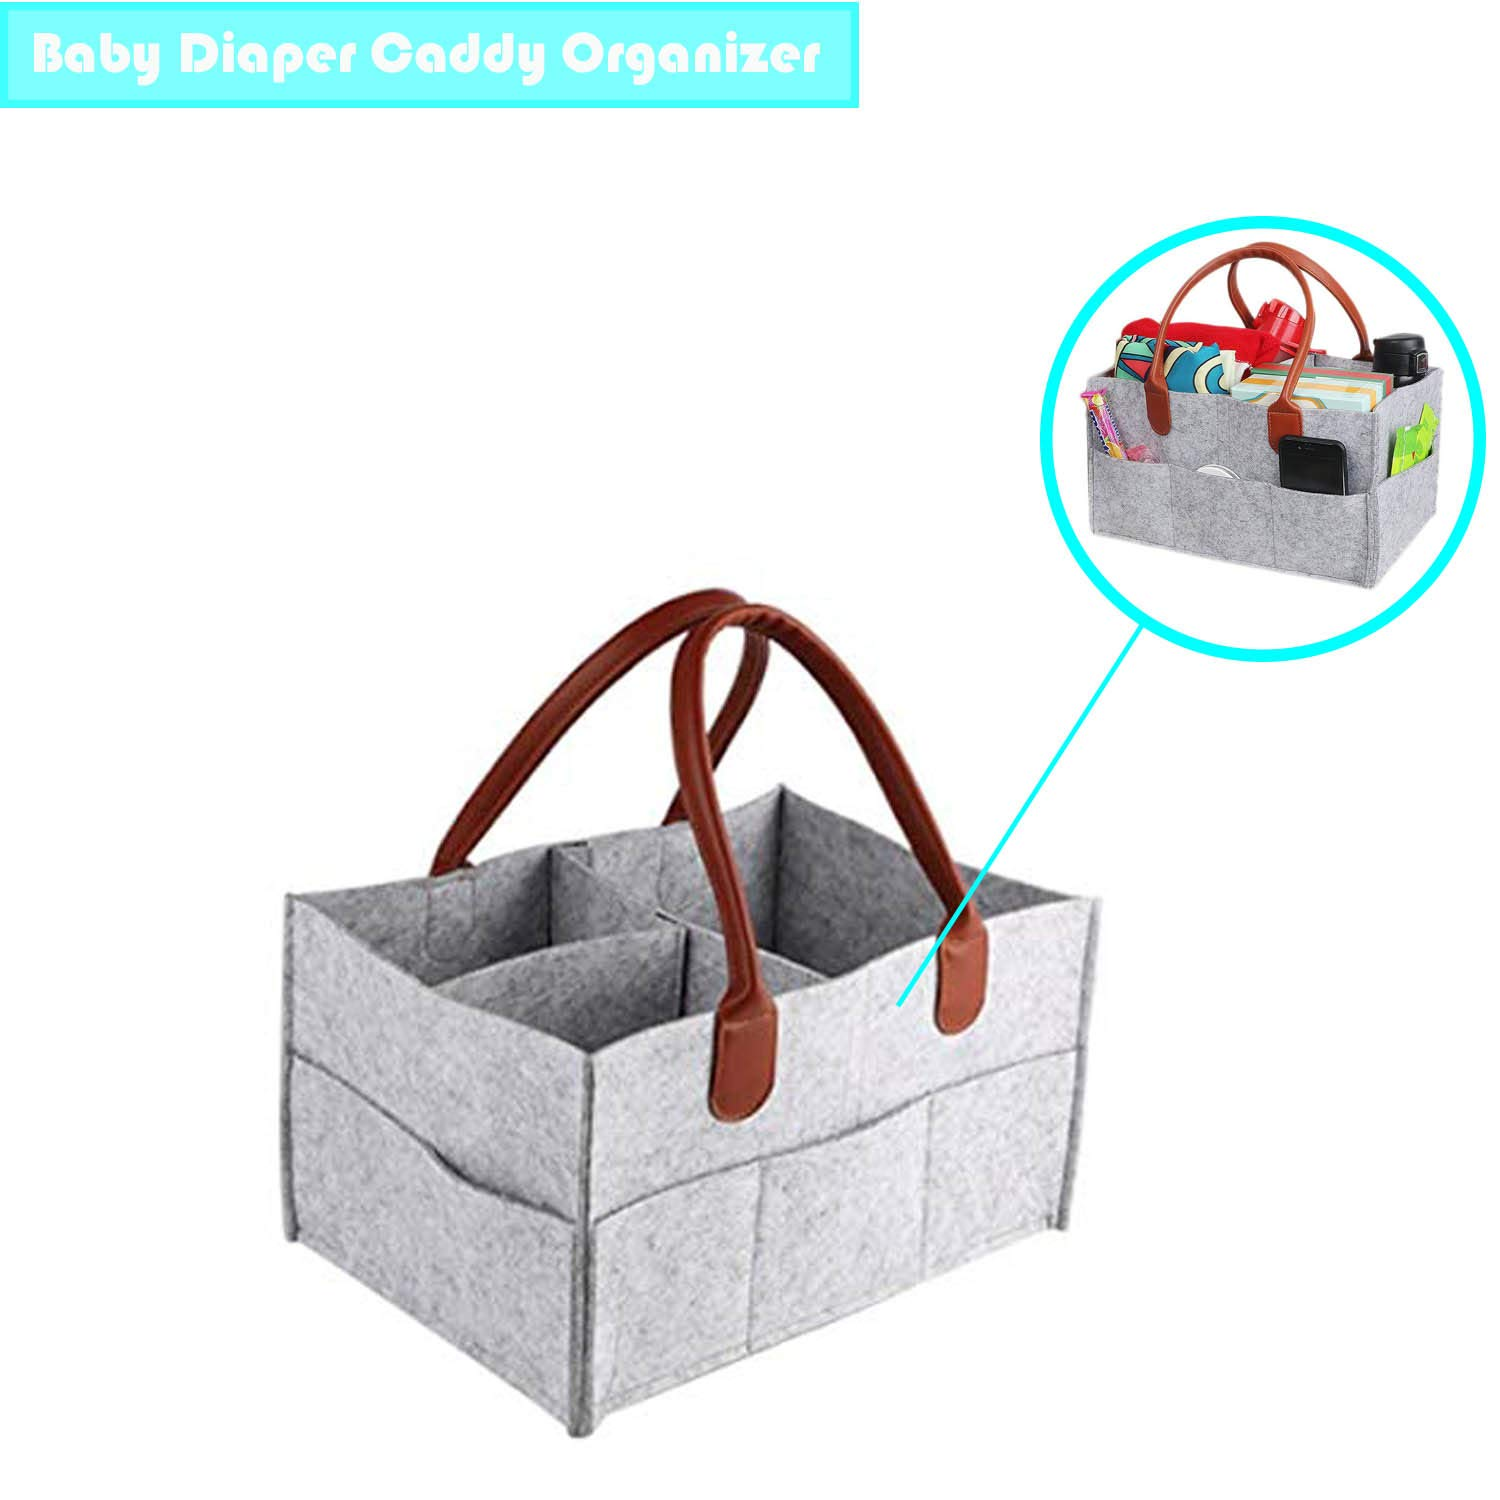 Baby Diaper Caddy Organizer,Portable Diaper Caddy Tote,Multiple Compartments Gray Felt Storage Basket for Diaper, Wipes, and Toys- Newborn Registry Must Have XK-Life